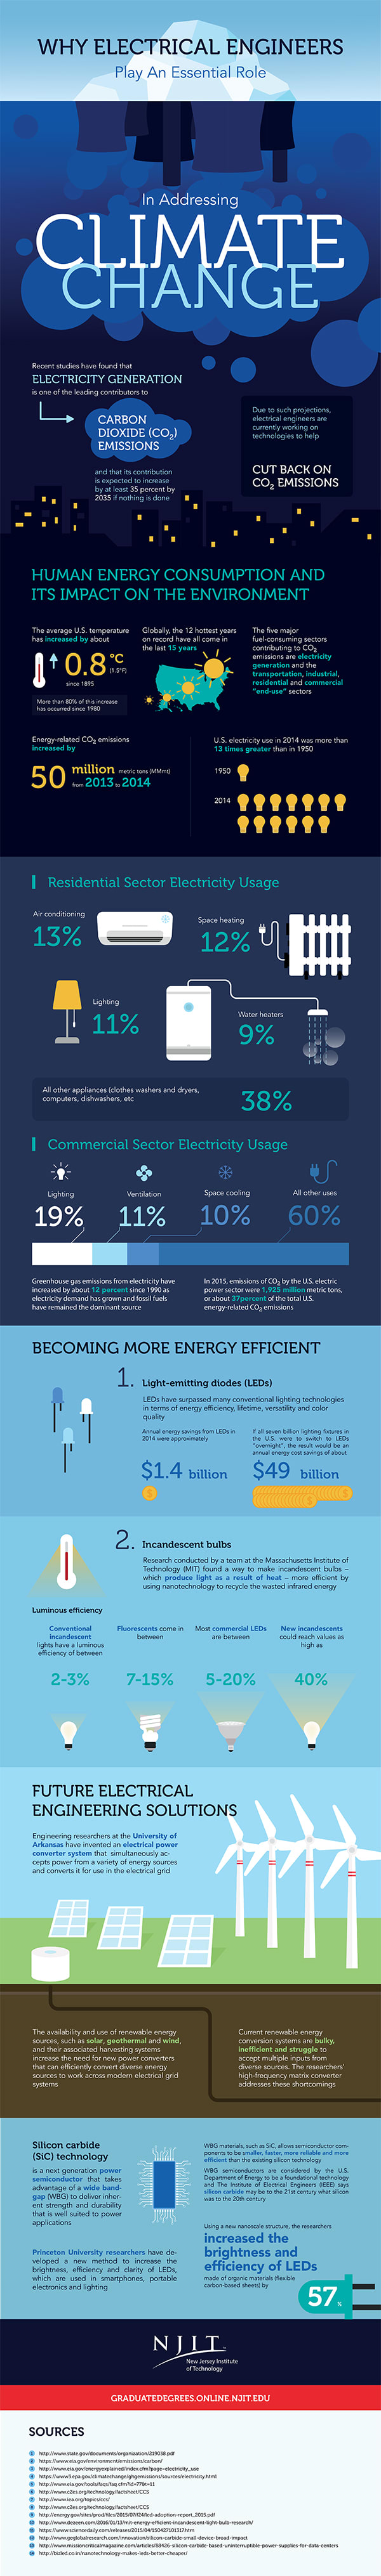 An infographic created by the New Jersey Institute of Technology's online Masters in Electrical Engineering program to illustrate how electrical engineers play a role in climate change. (Image courtesy of New Jersey Institute of Technology's online Masters in Electrical Engineering program.)